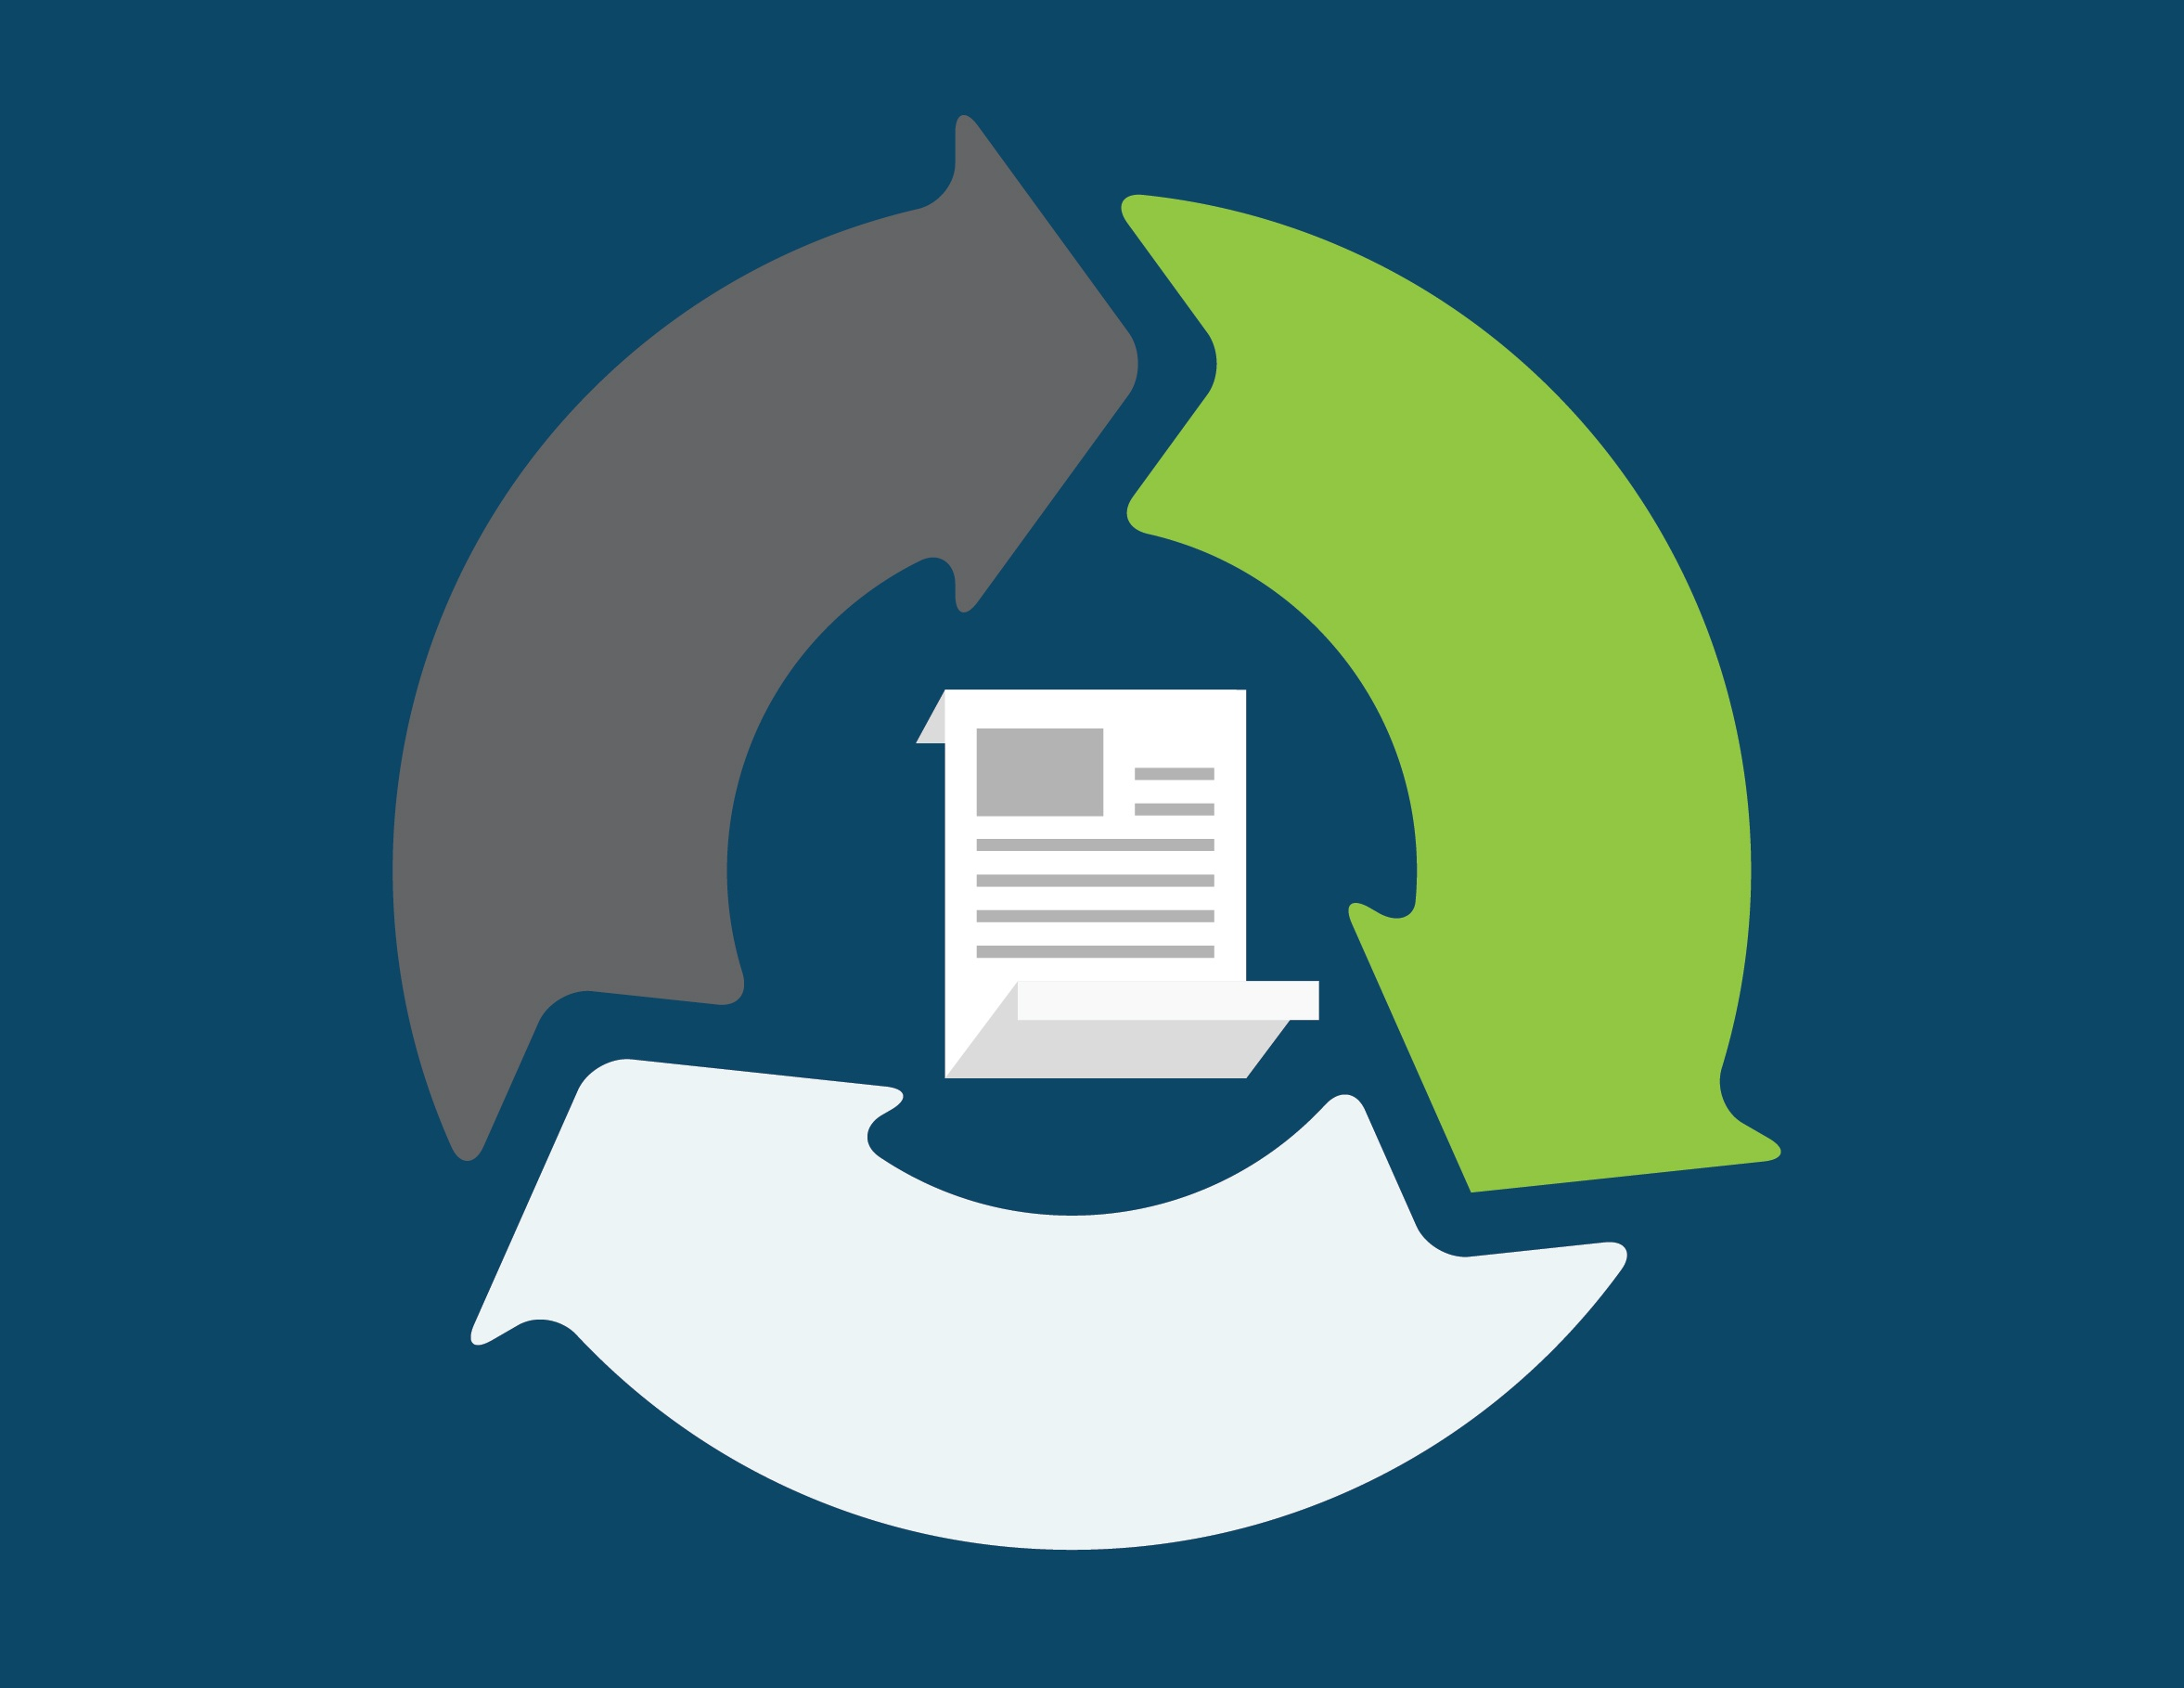 resources bank, credit union, mortgage vendor management lifecycle infographic